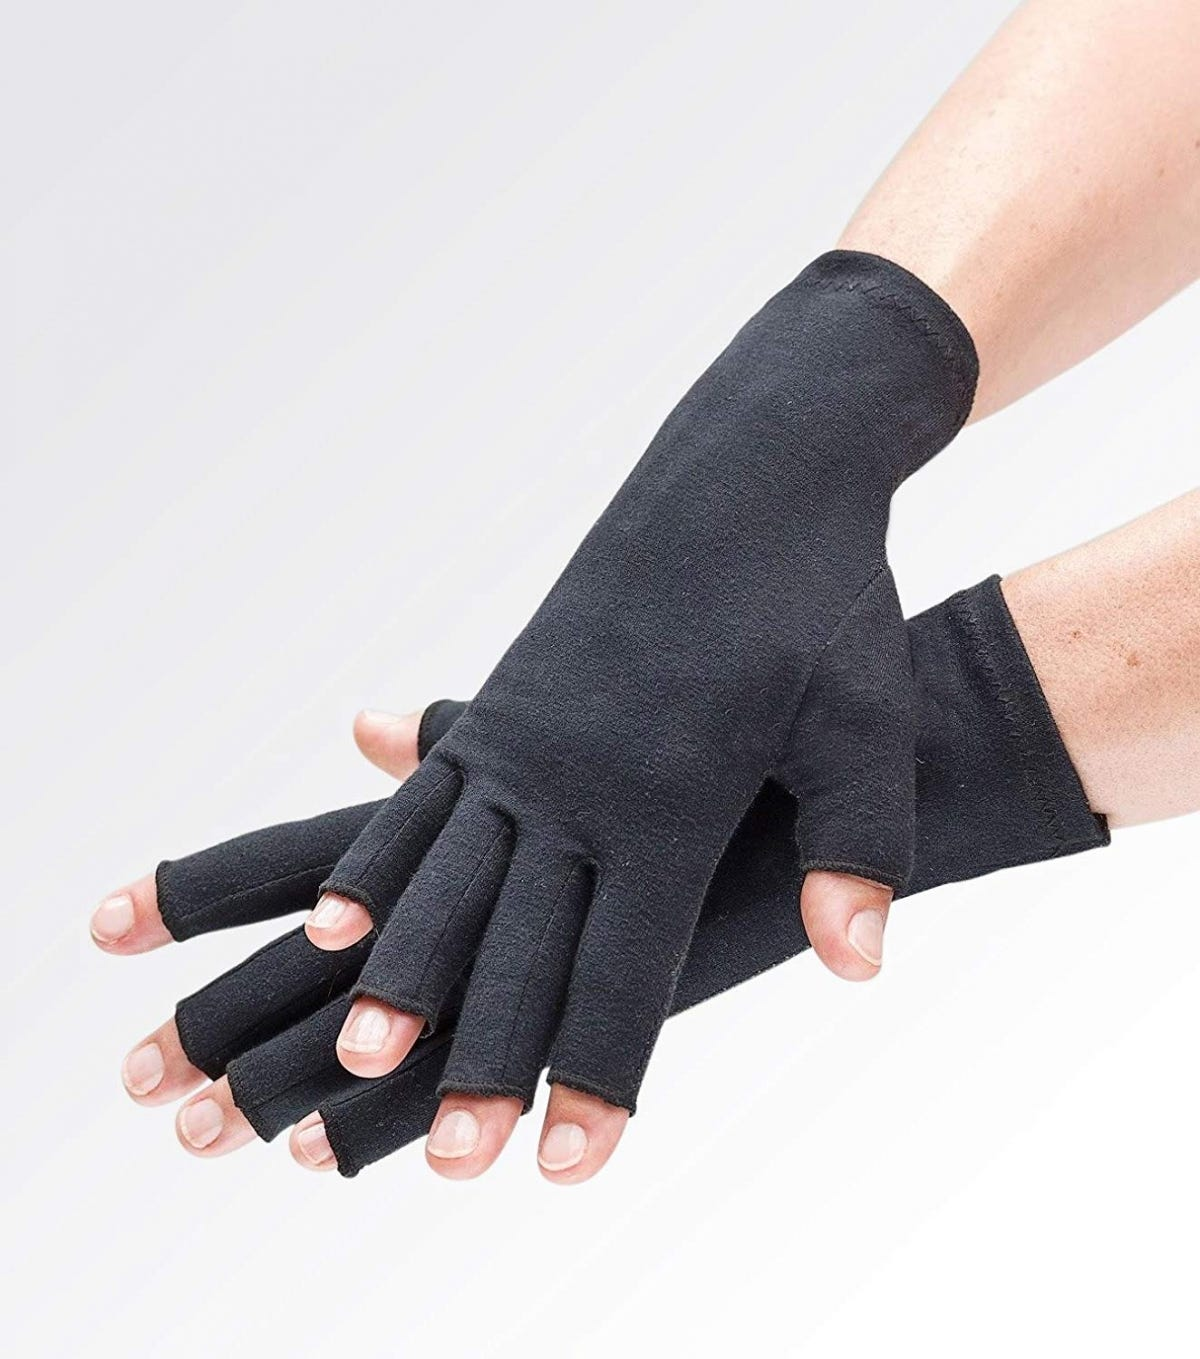 The Best Gloves To Keep Your Freezing Hands Warm In The